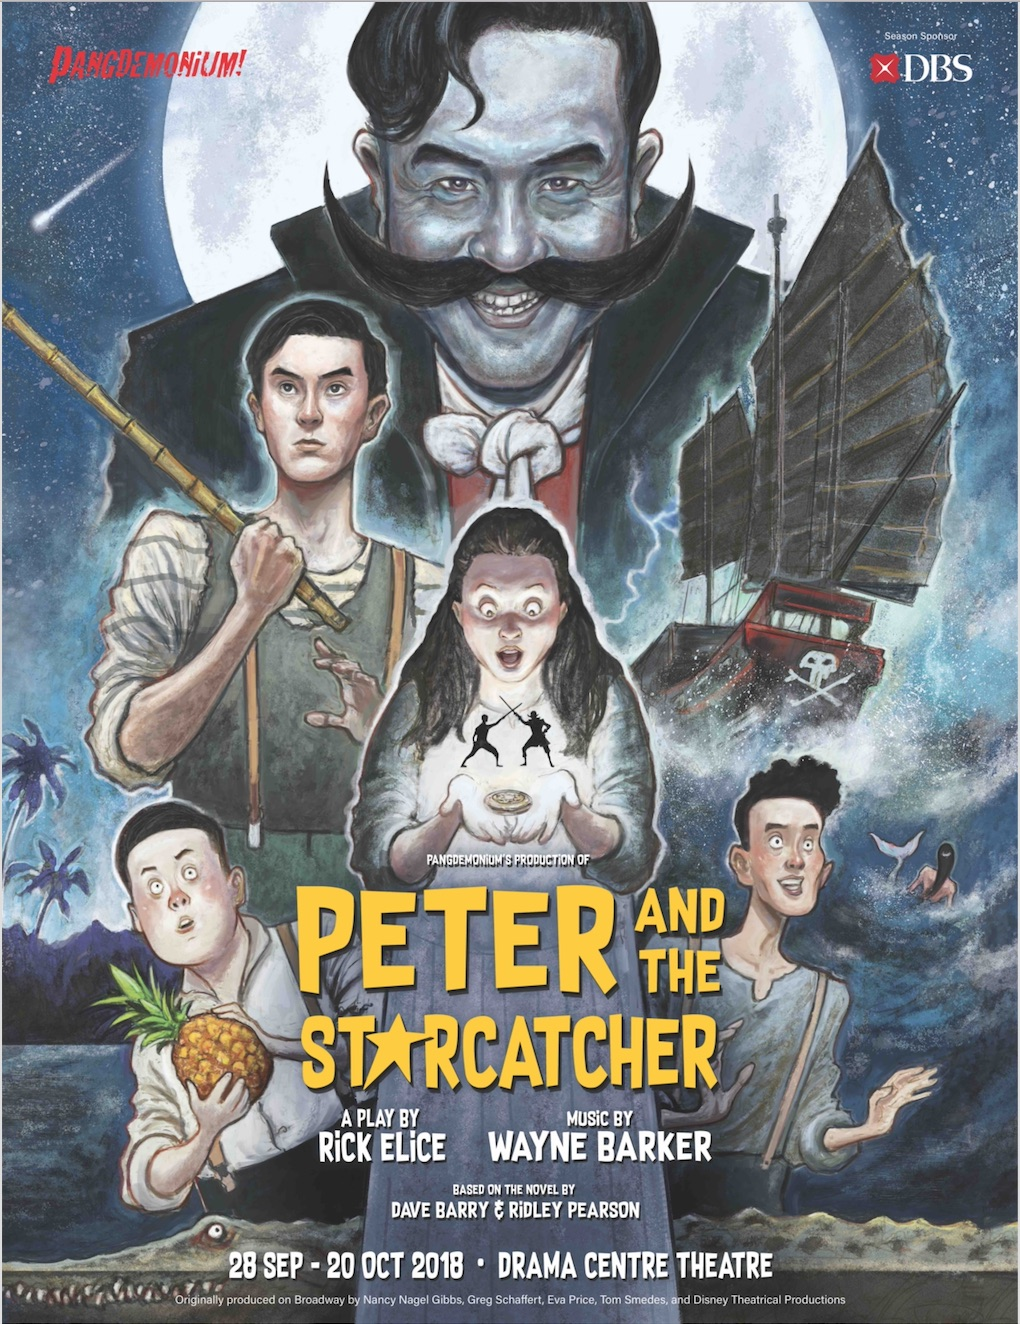 The poster for Peter and the Starcatcher